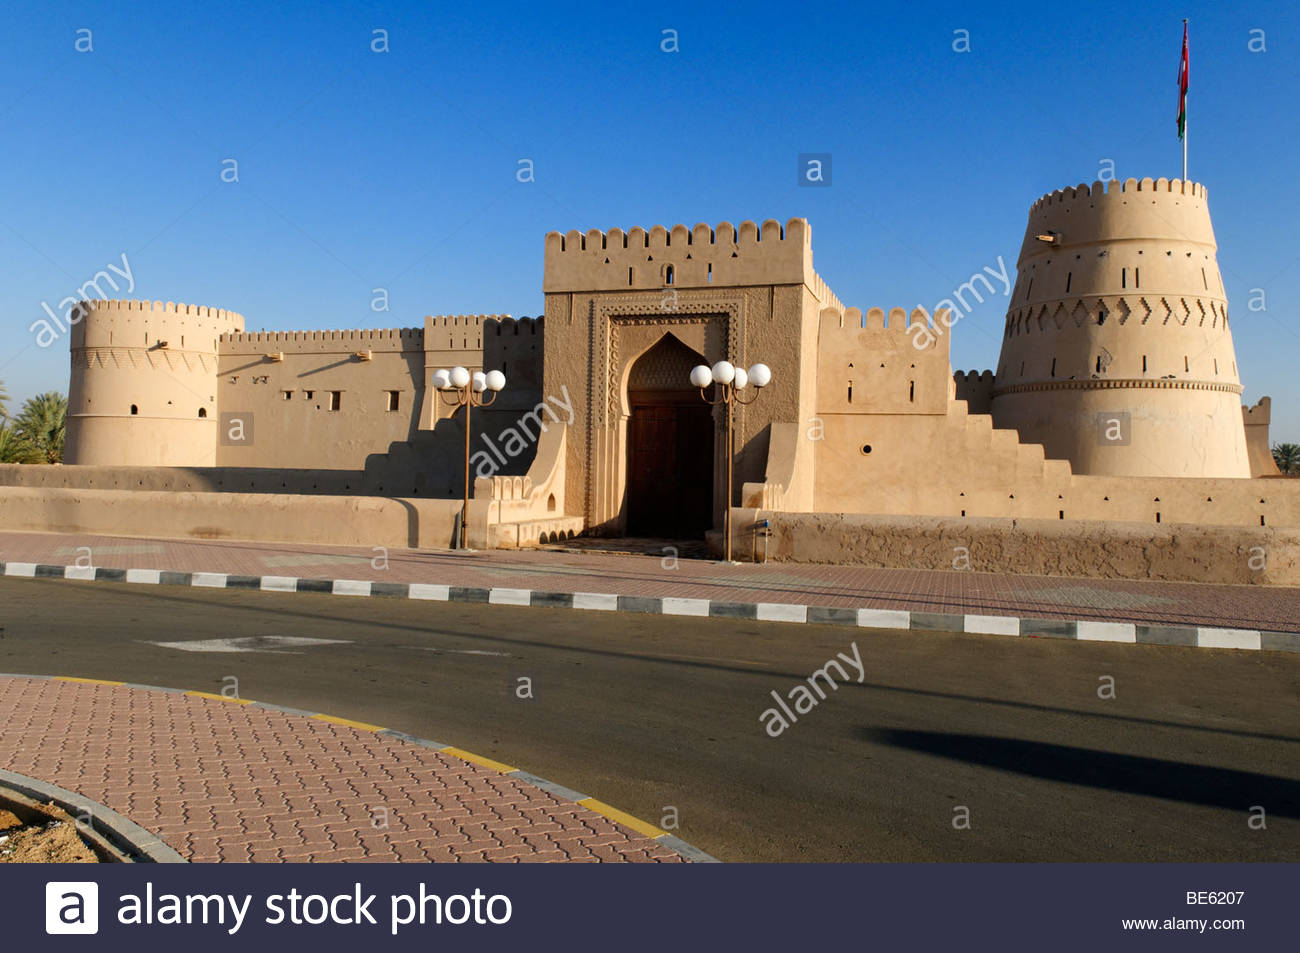 Buraimi Fort Buraimi, Historic adobe fortification Al Khandaq Fort or Castle, Buraimi ...